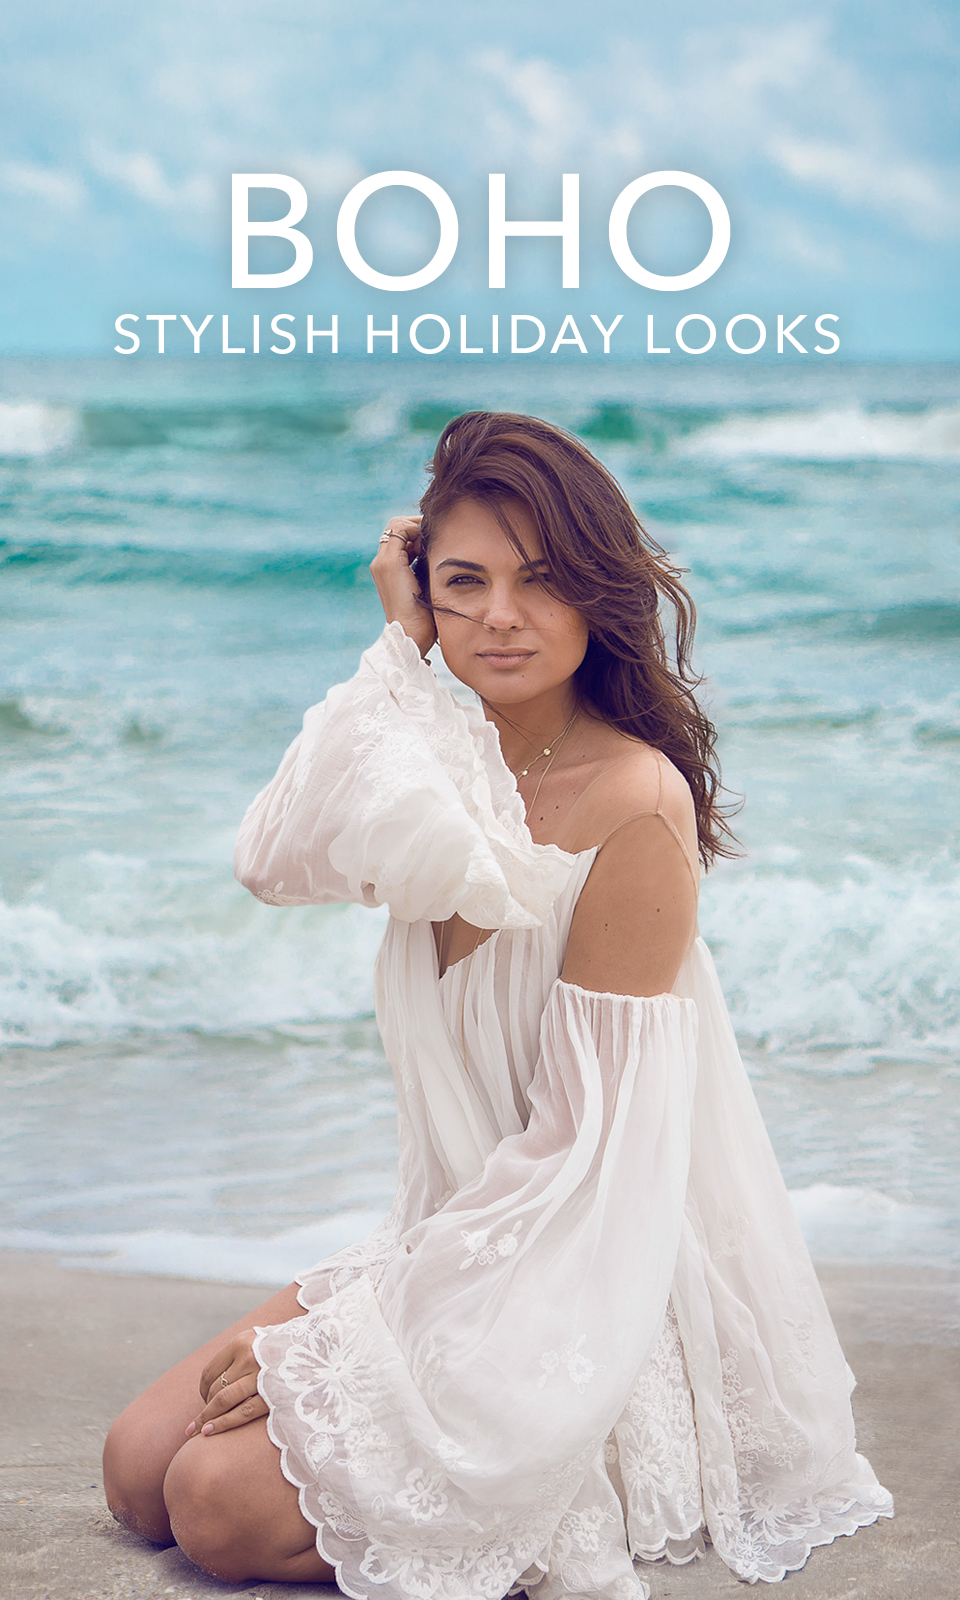 BOHO - Stylish holiday looks